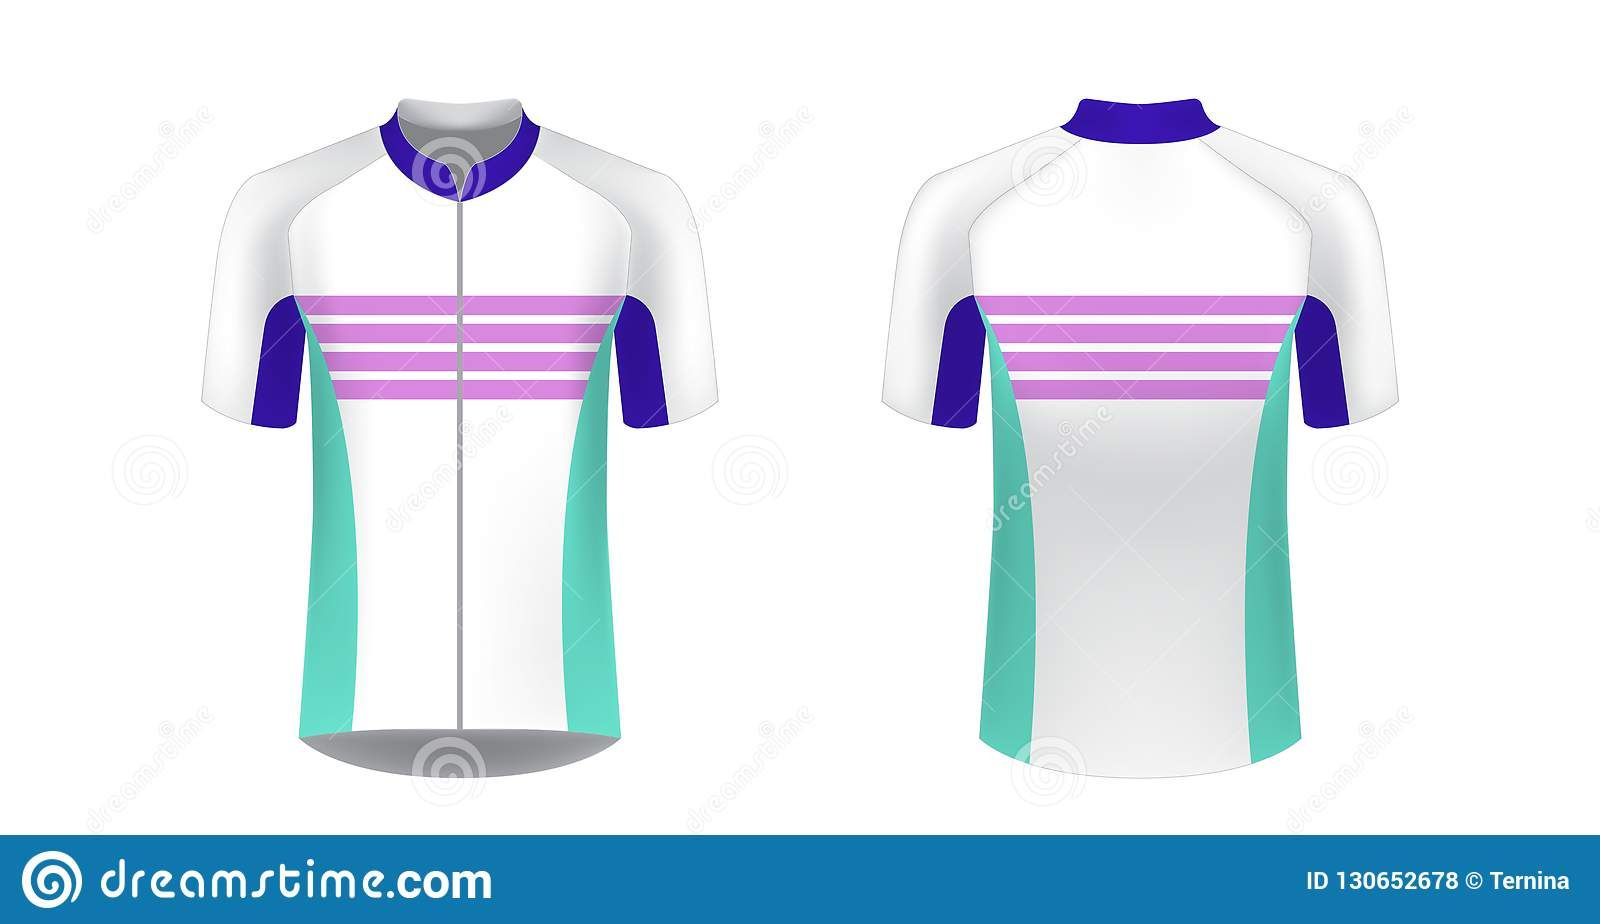 Download Cycling Jersey Mockup Stock Vector Illustration Of Front Pertaining To Blank Cycling Jersey Templa Professional Templates Cycling Jersey Design Cycling Jersey